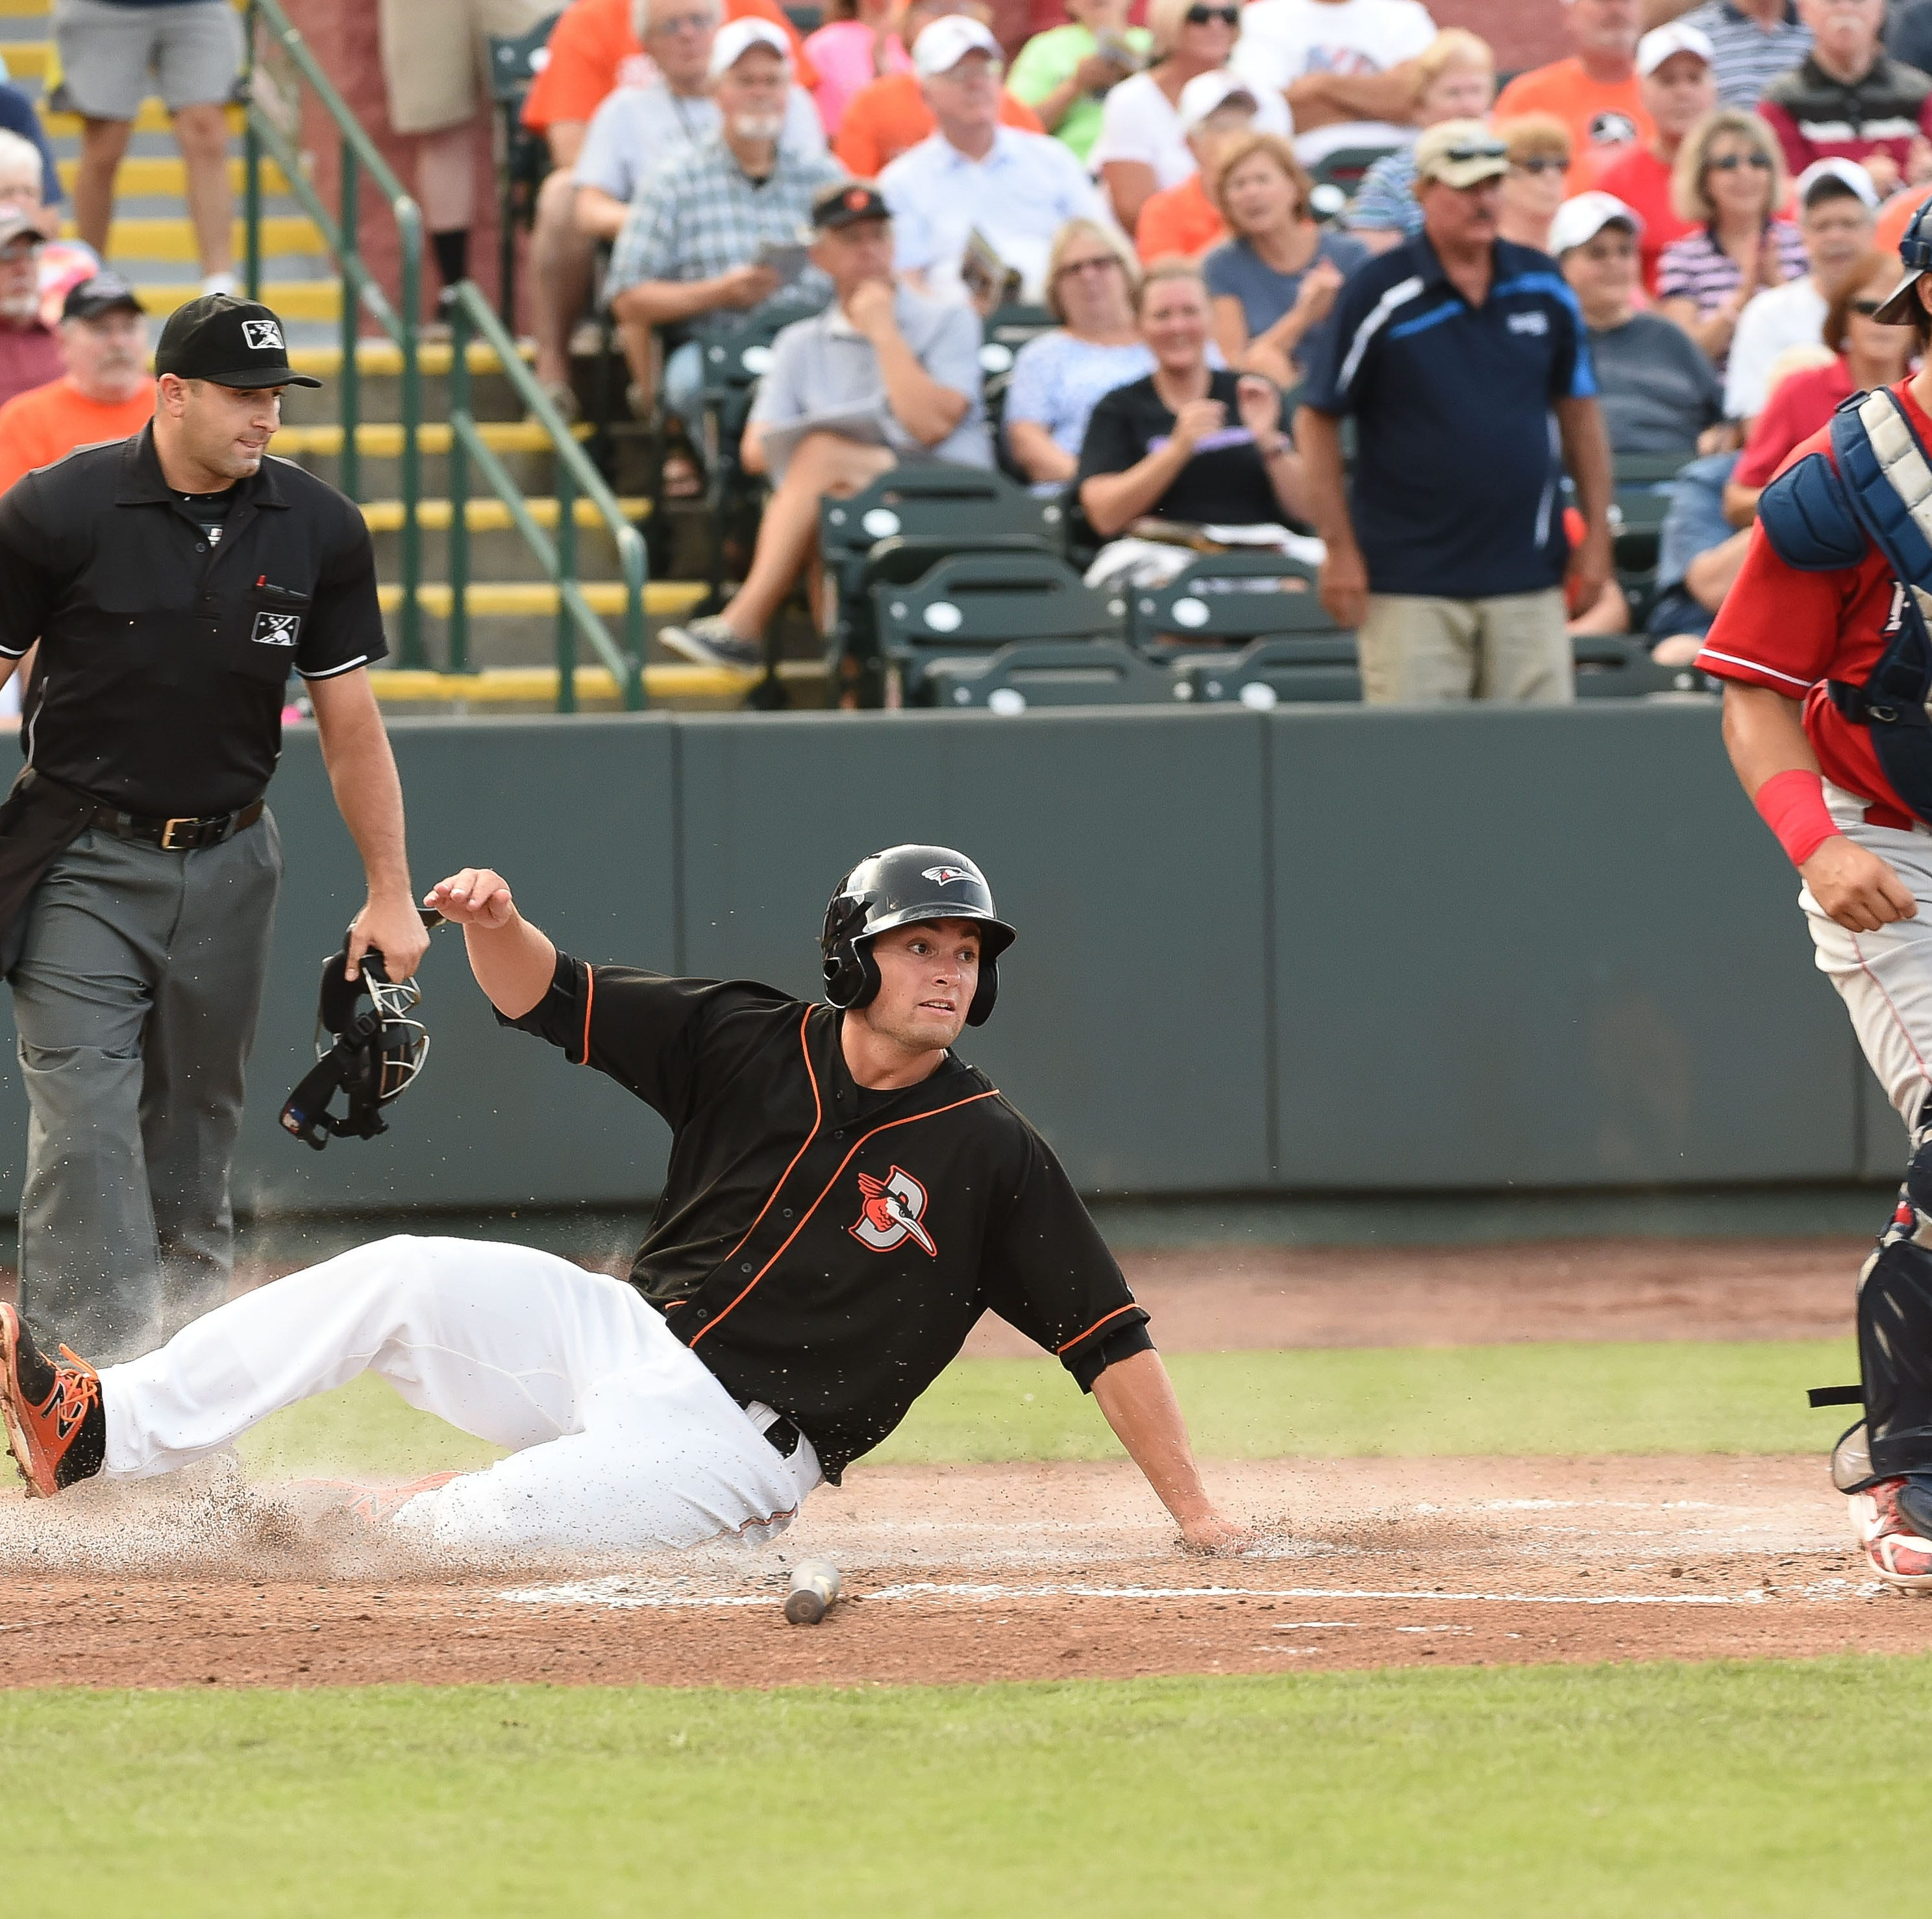 Delmarva Shorebirds' Tevor Craport slides into home  against the Lakewood BlueClaws on Wednesday, August 1, 2018 at the Arthur W. Perdue Stadium in Salisbury, Md.